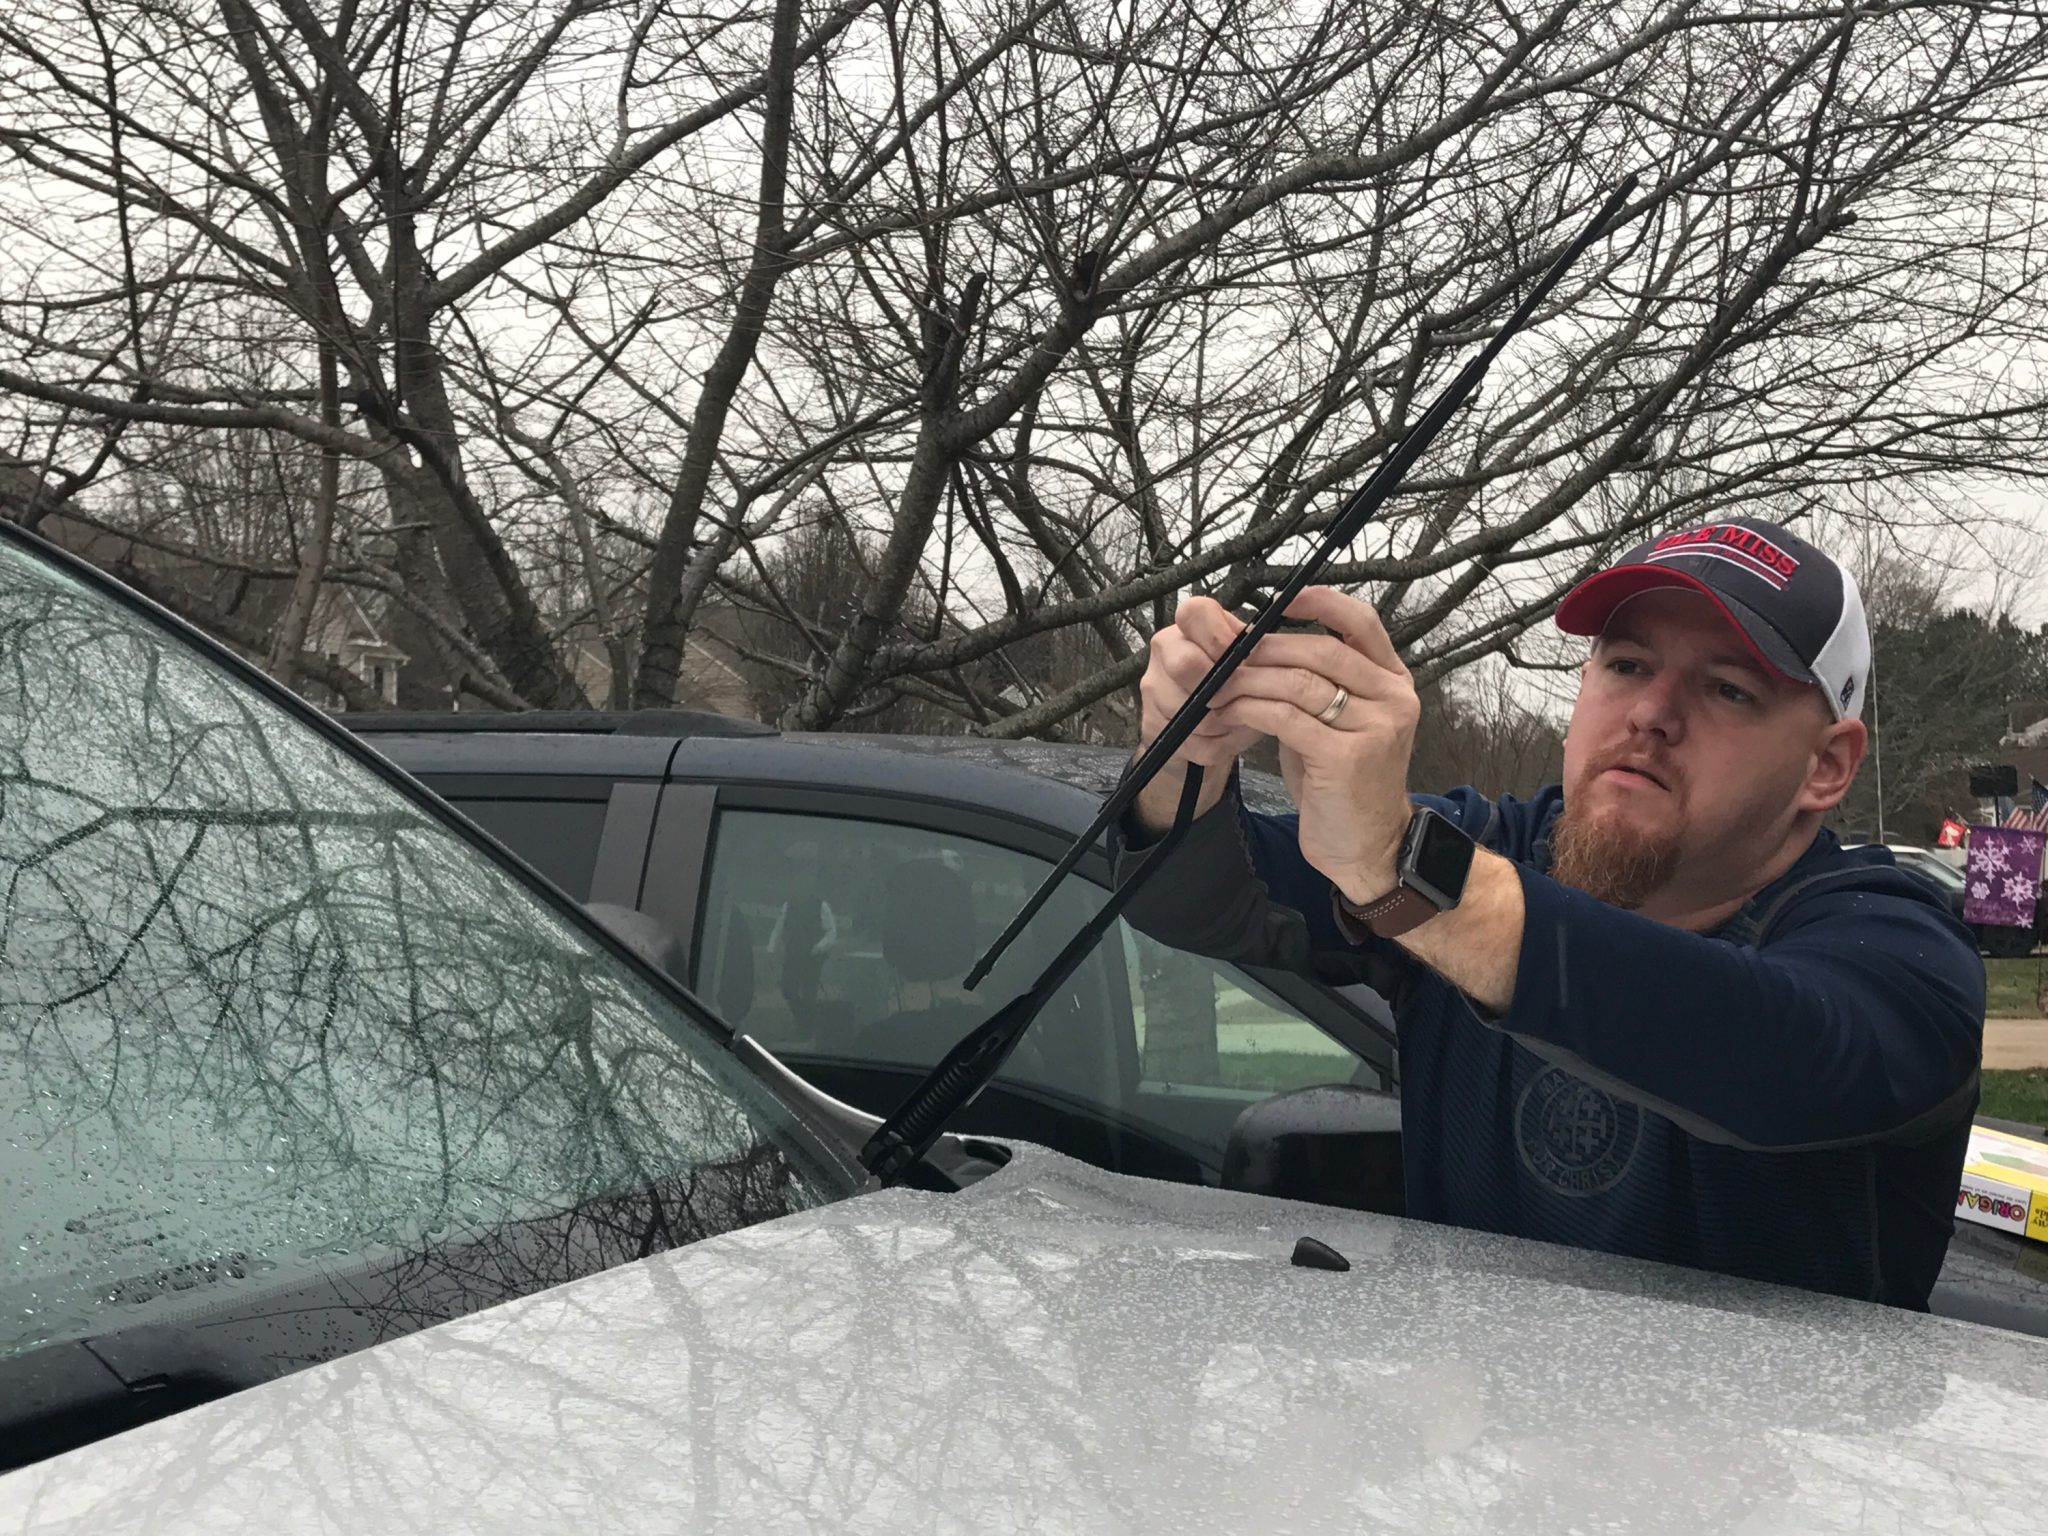 winterize-your-car-by-changing-windshield-wipers